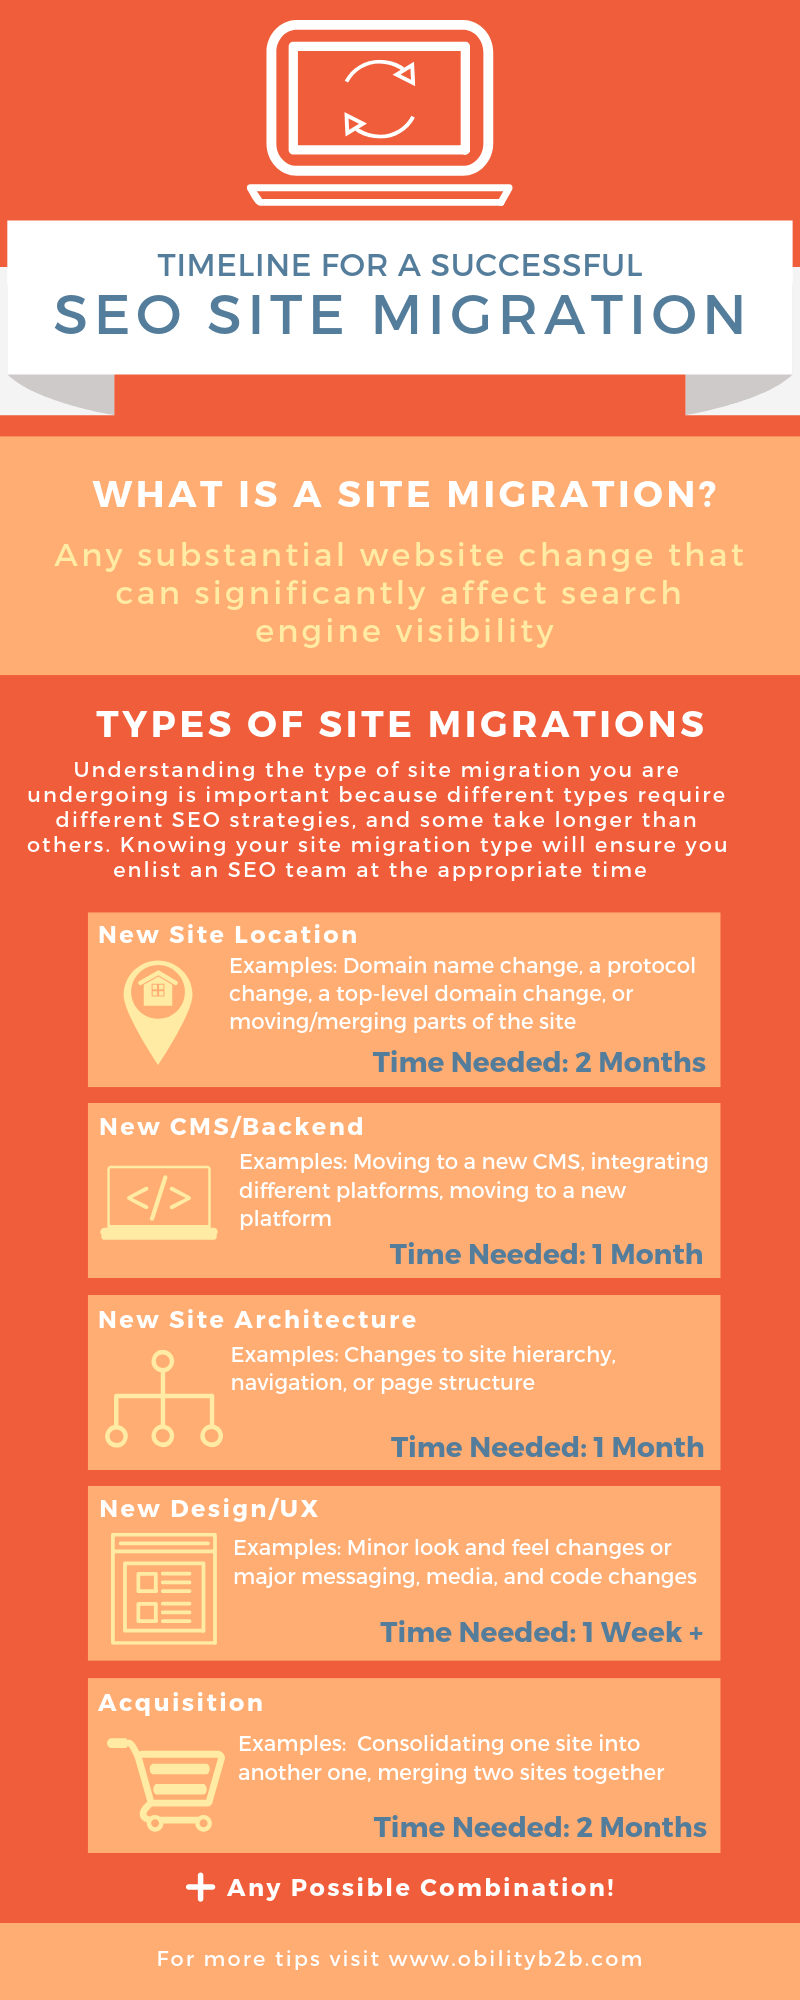 SEO Site Migration Strategy Infographic